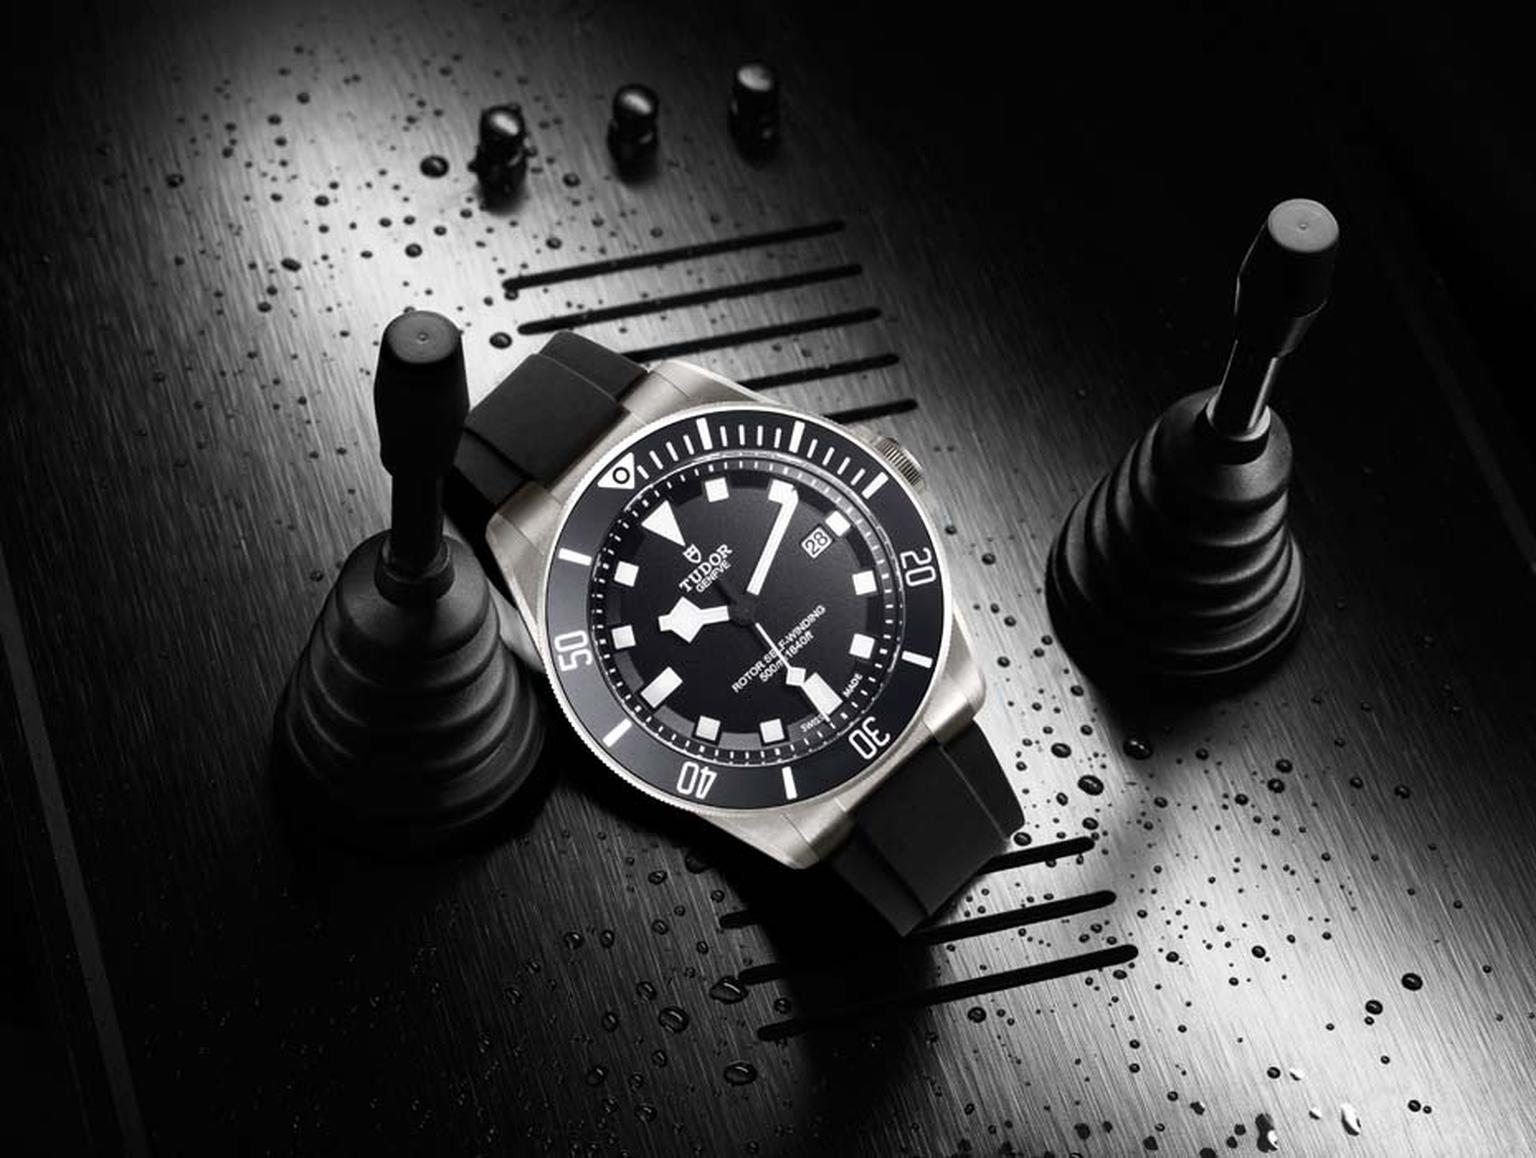 The Tudor Pelagos diver's watch is waterproof to an impressive 500m and features a 42mm satin-finished case made of titanium.